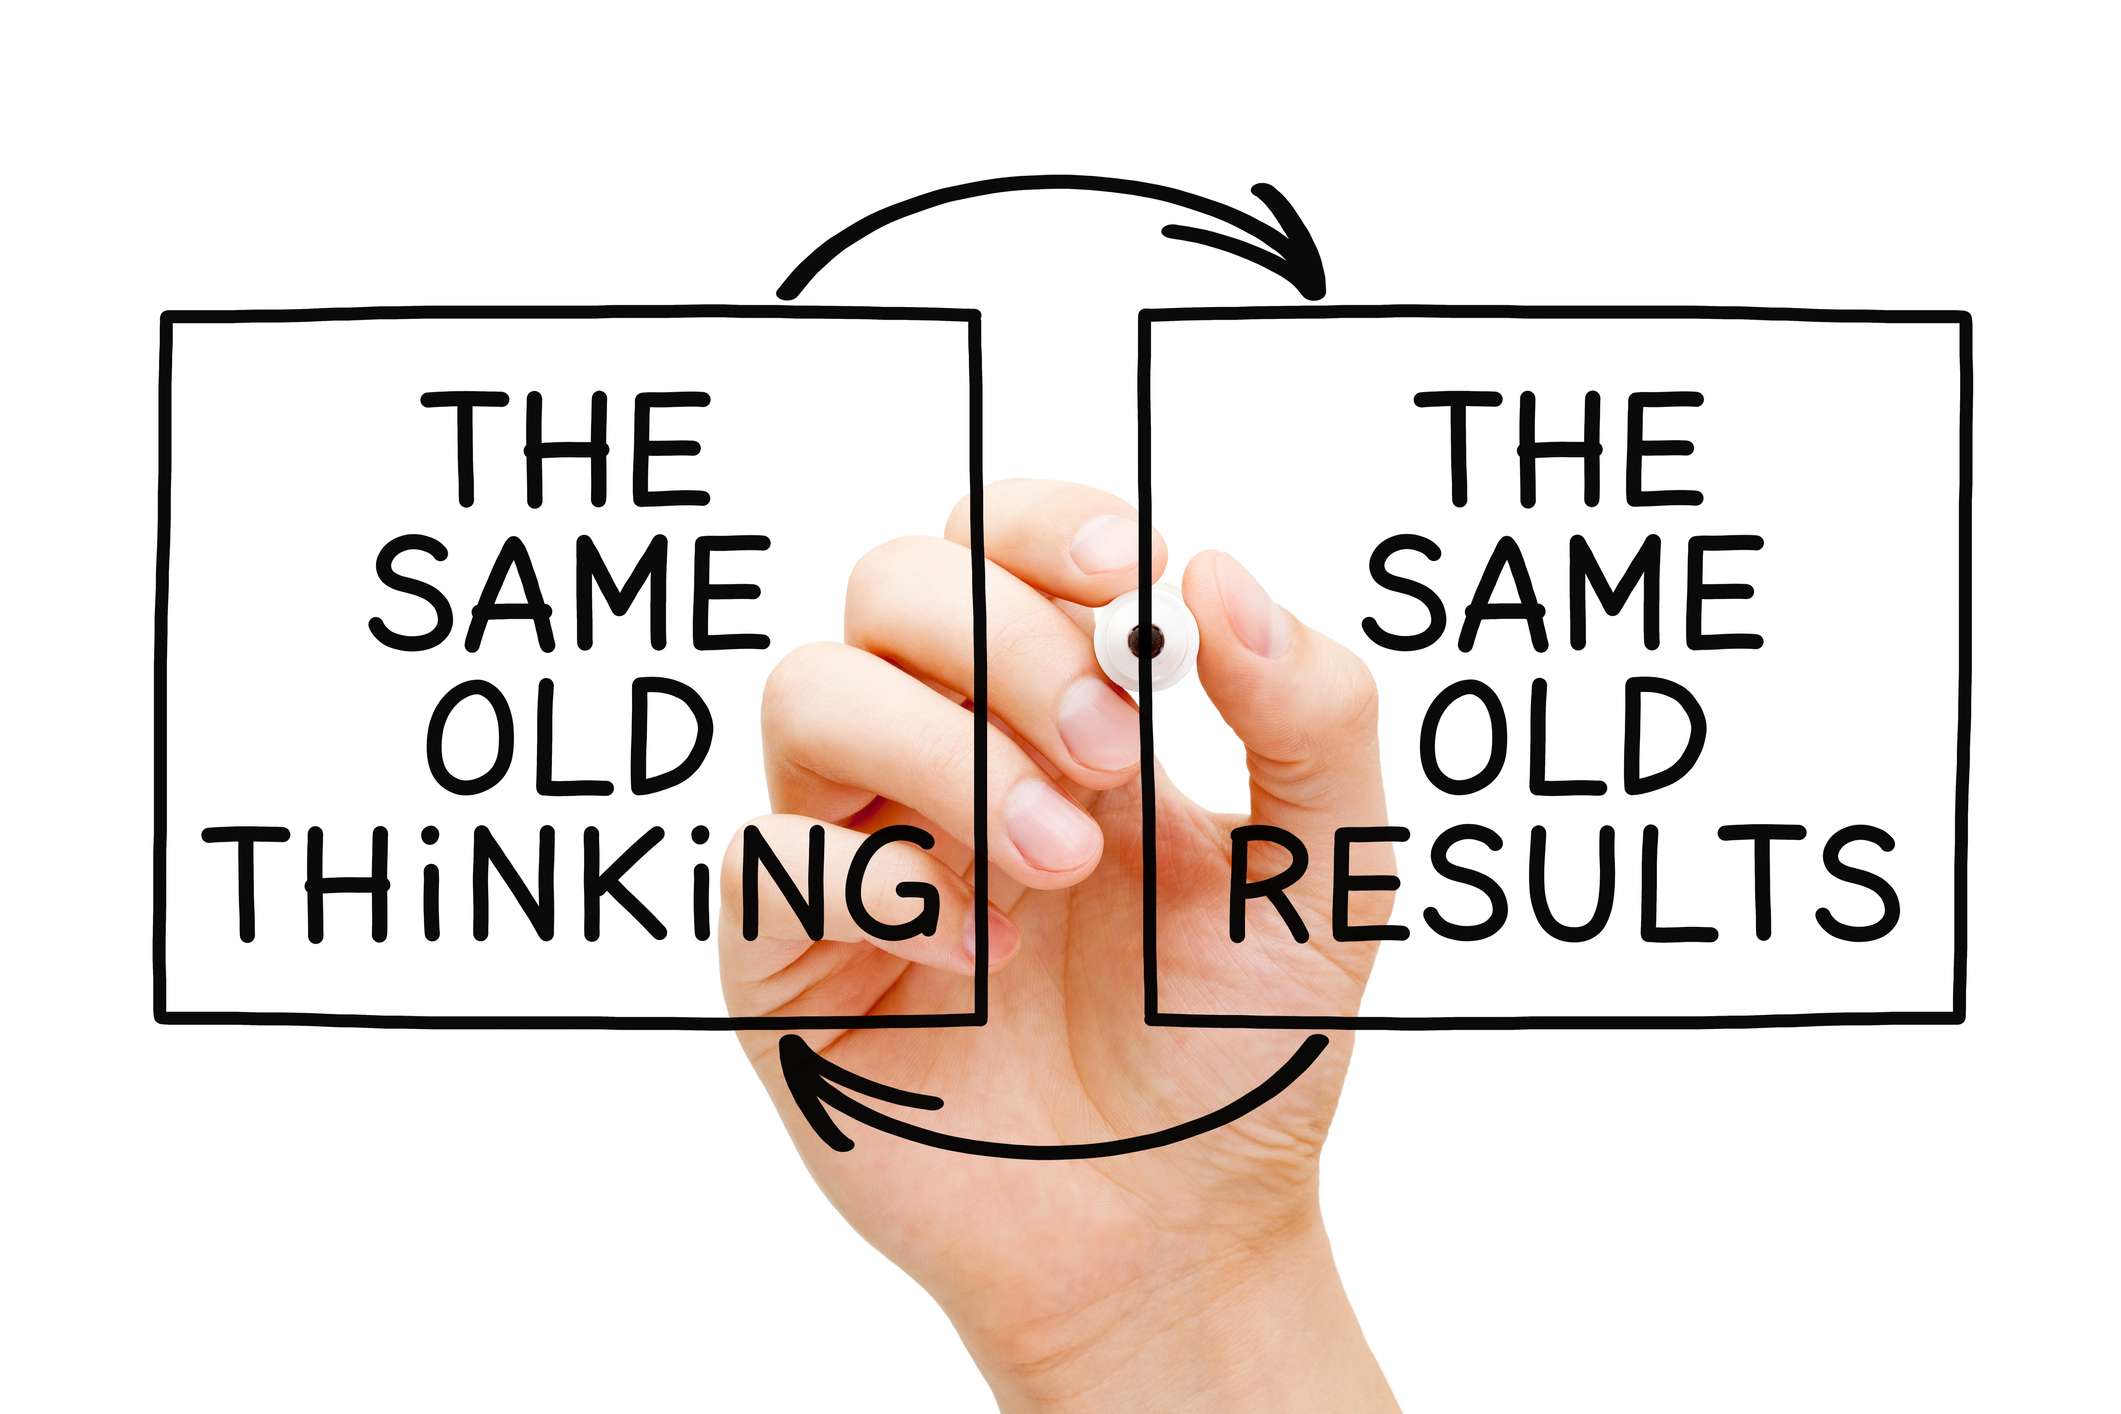 The-Same-Old-Thinking-The-Same-Old-Results-962701842_2125x1416.jpeg